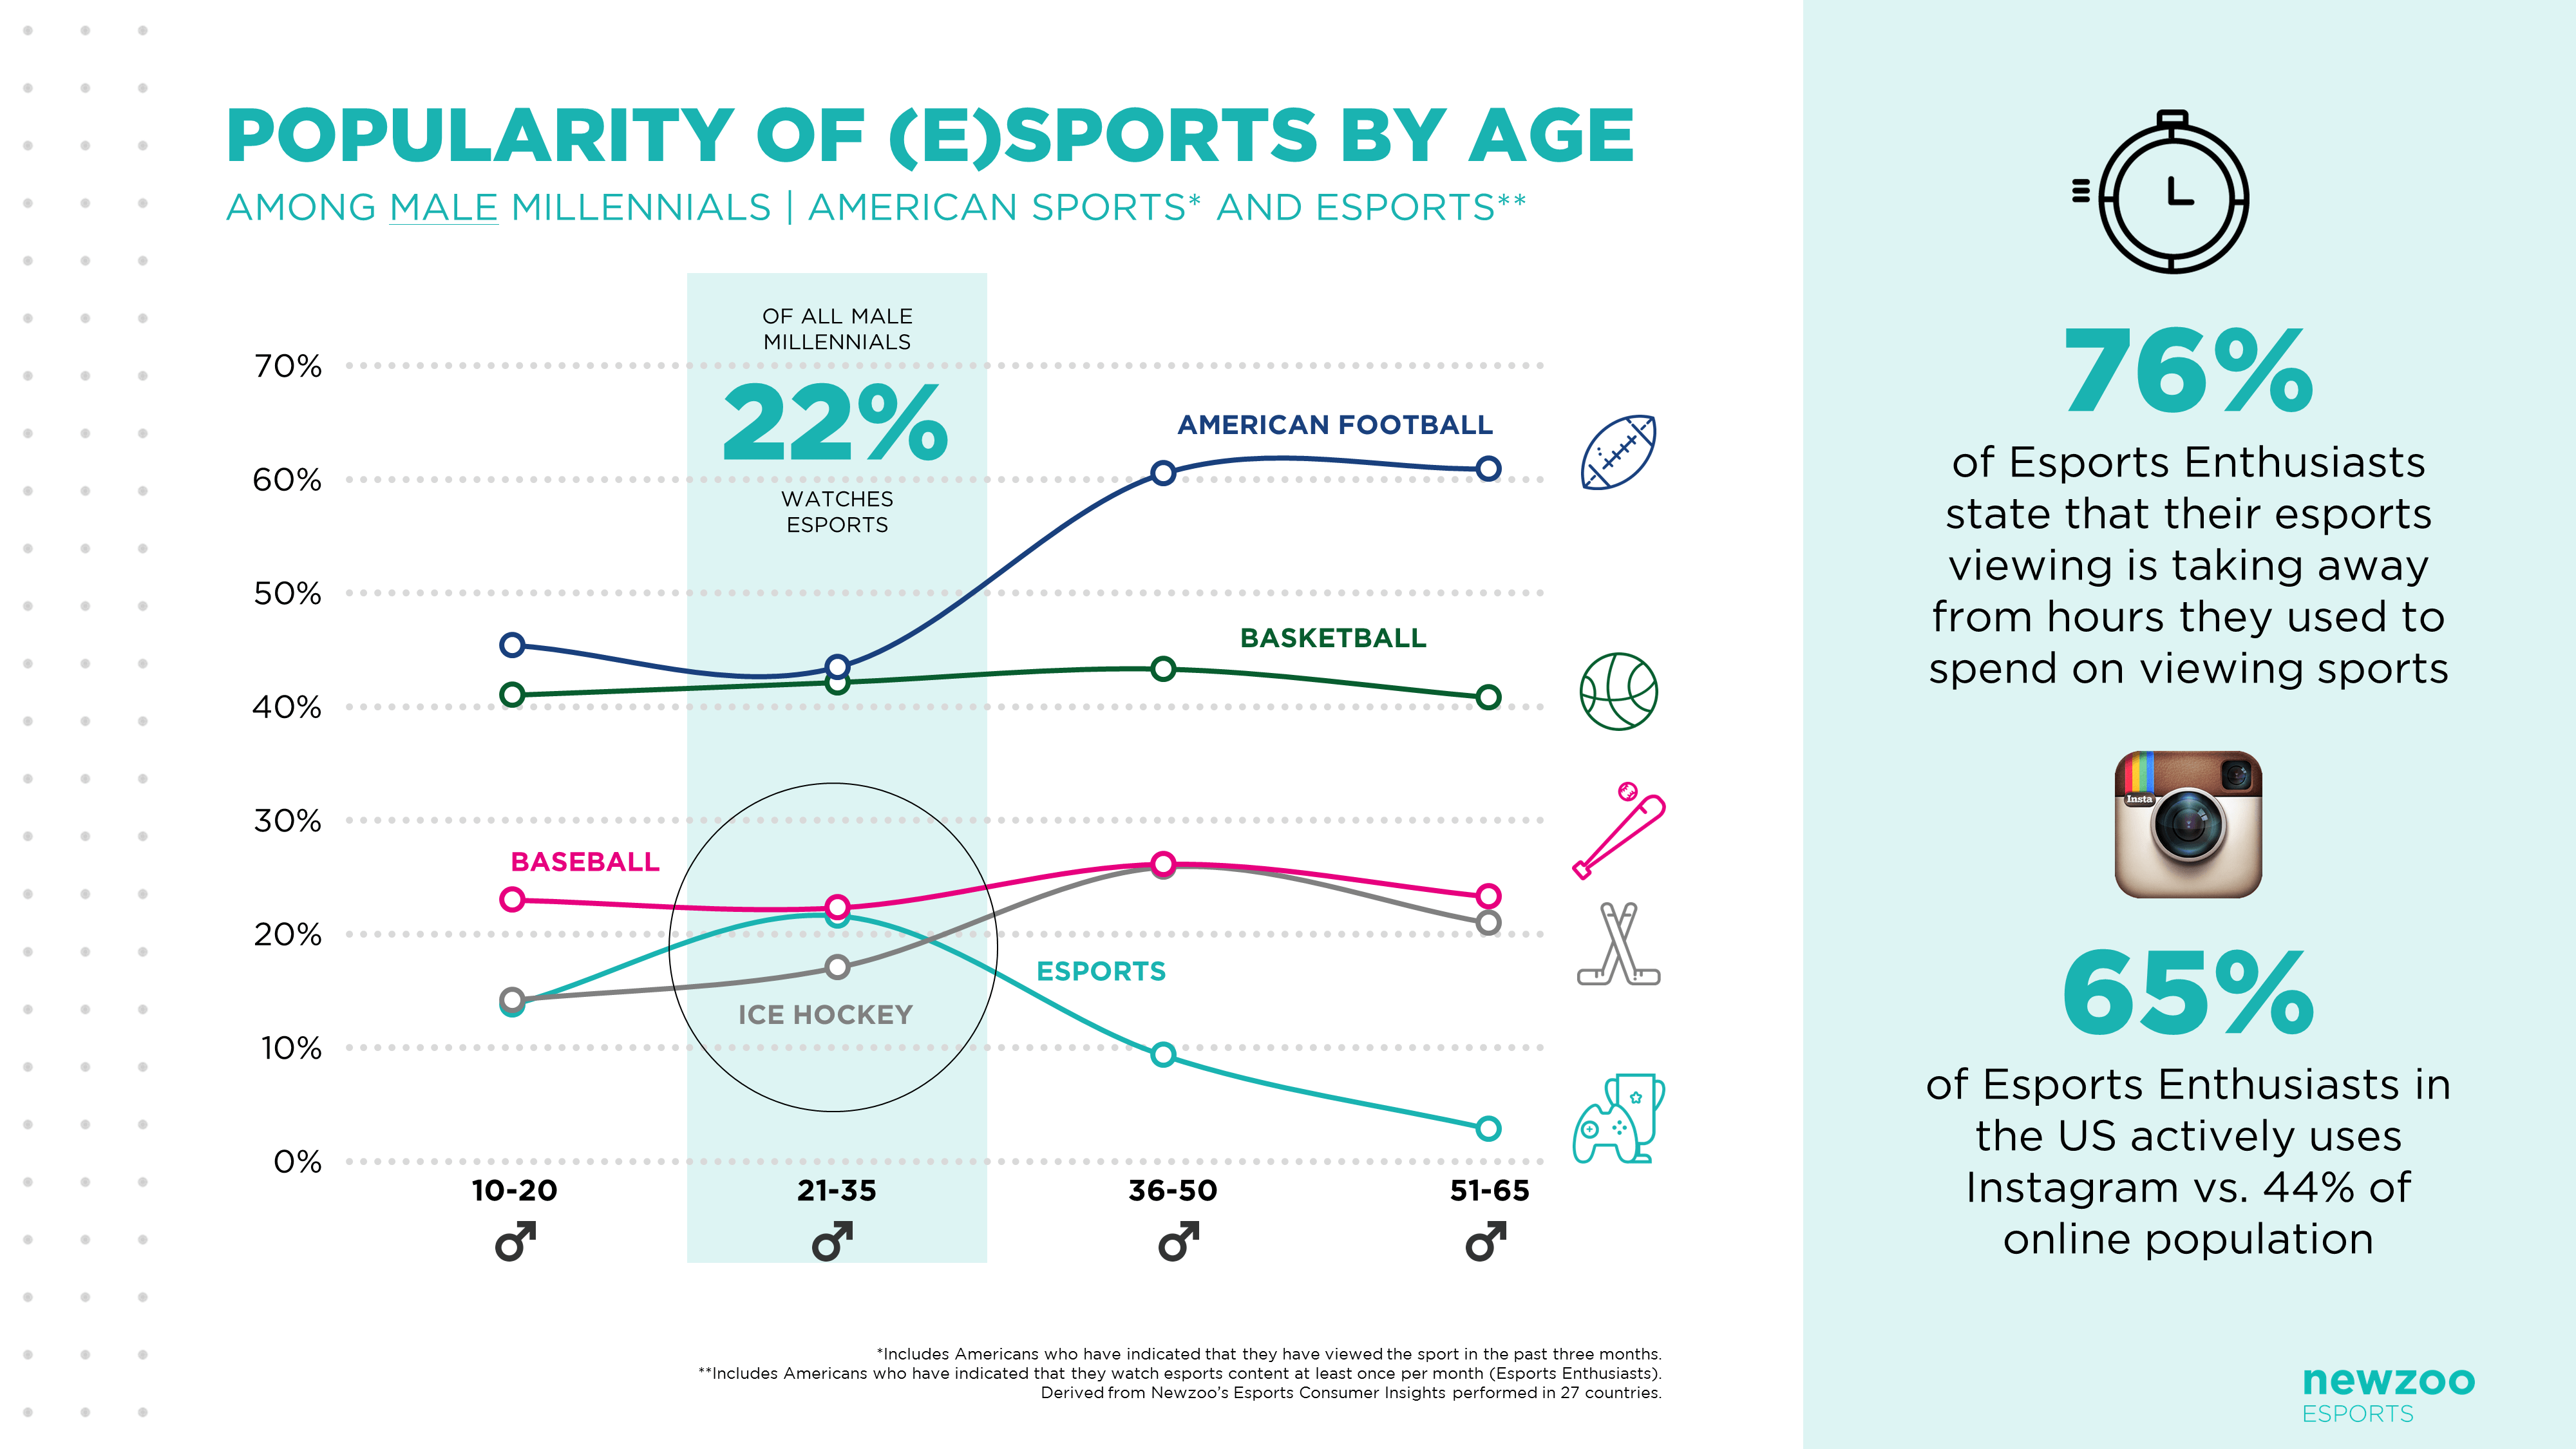 newzoo_popularity_of_esports_and_sports_by_age